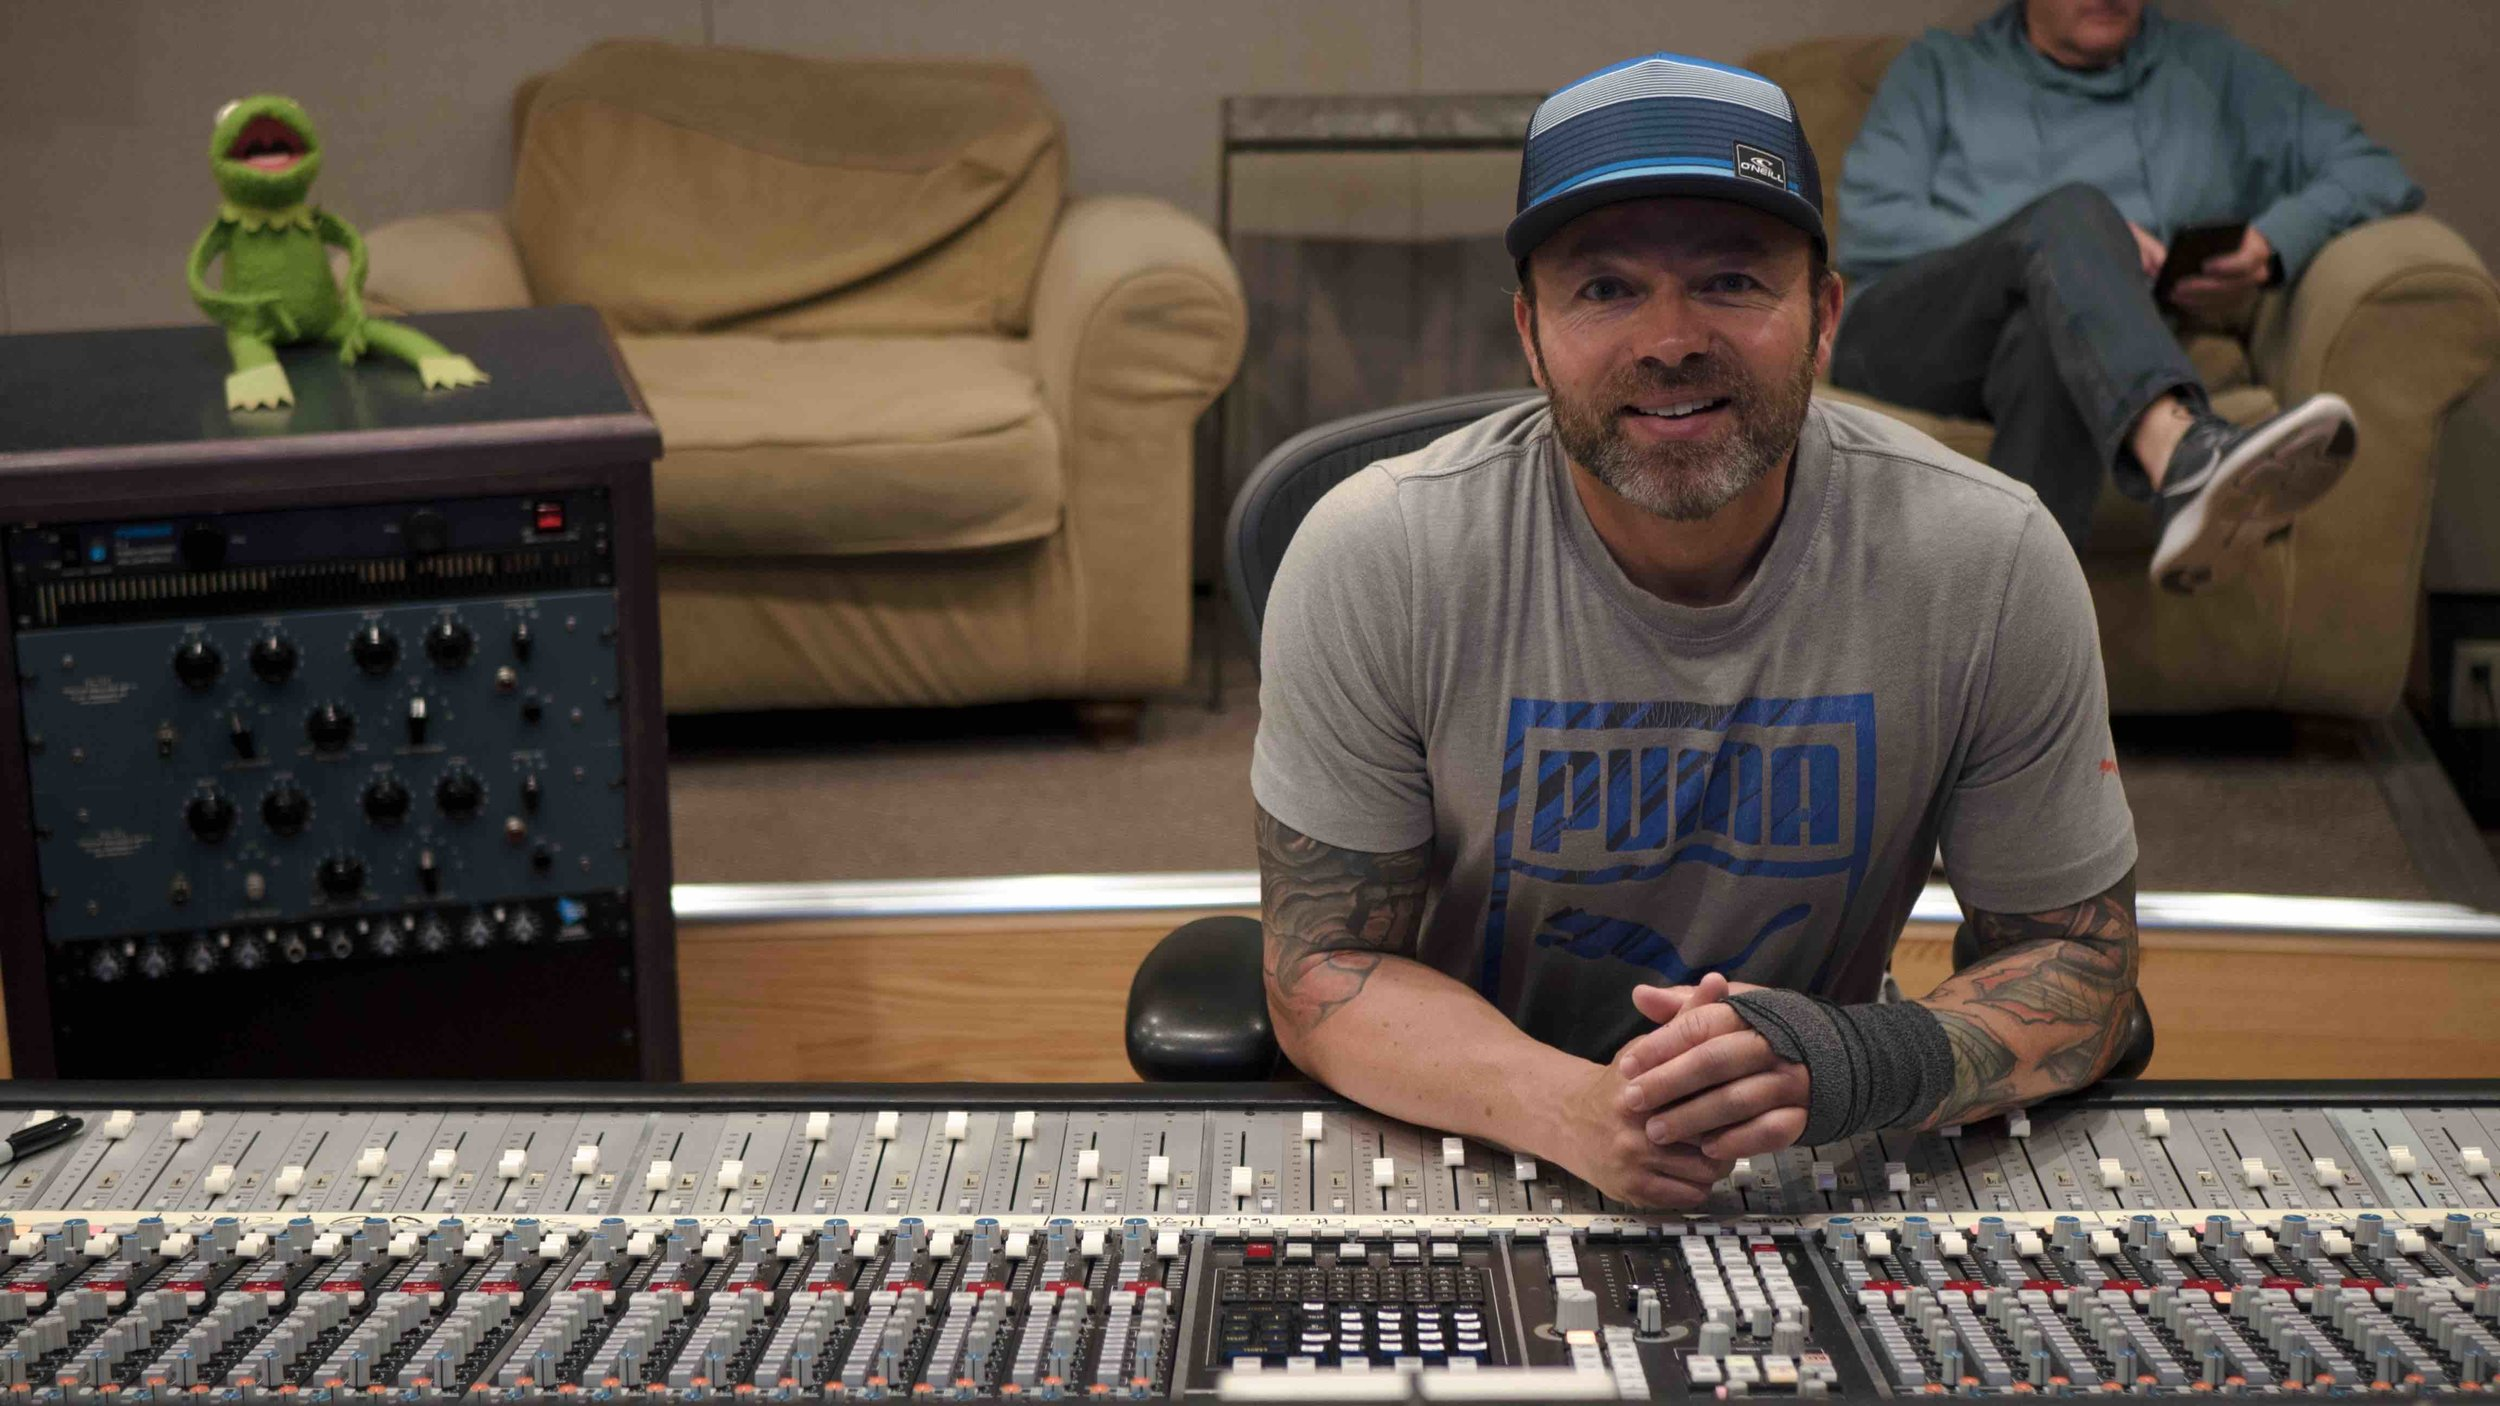 Cedrick earned an Associate's Degree in Audio Engineering at ESRA Institute in France and has since followed his passion for all things sound, working as a tracking and mix engineer as well as a post production sound designer and mixer.